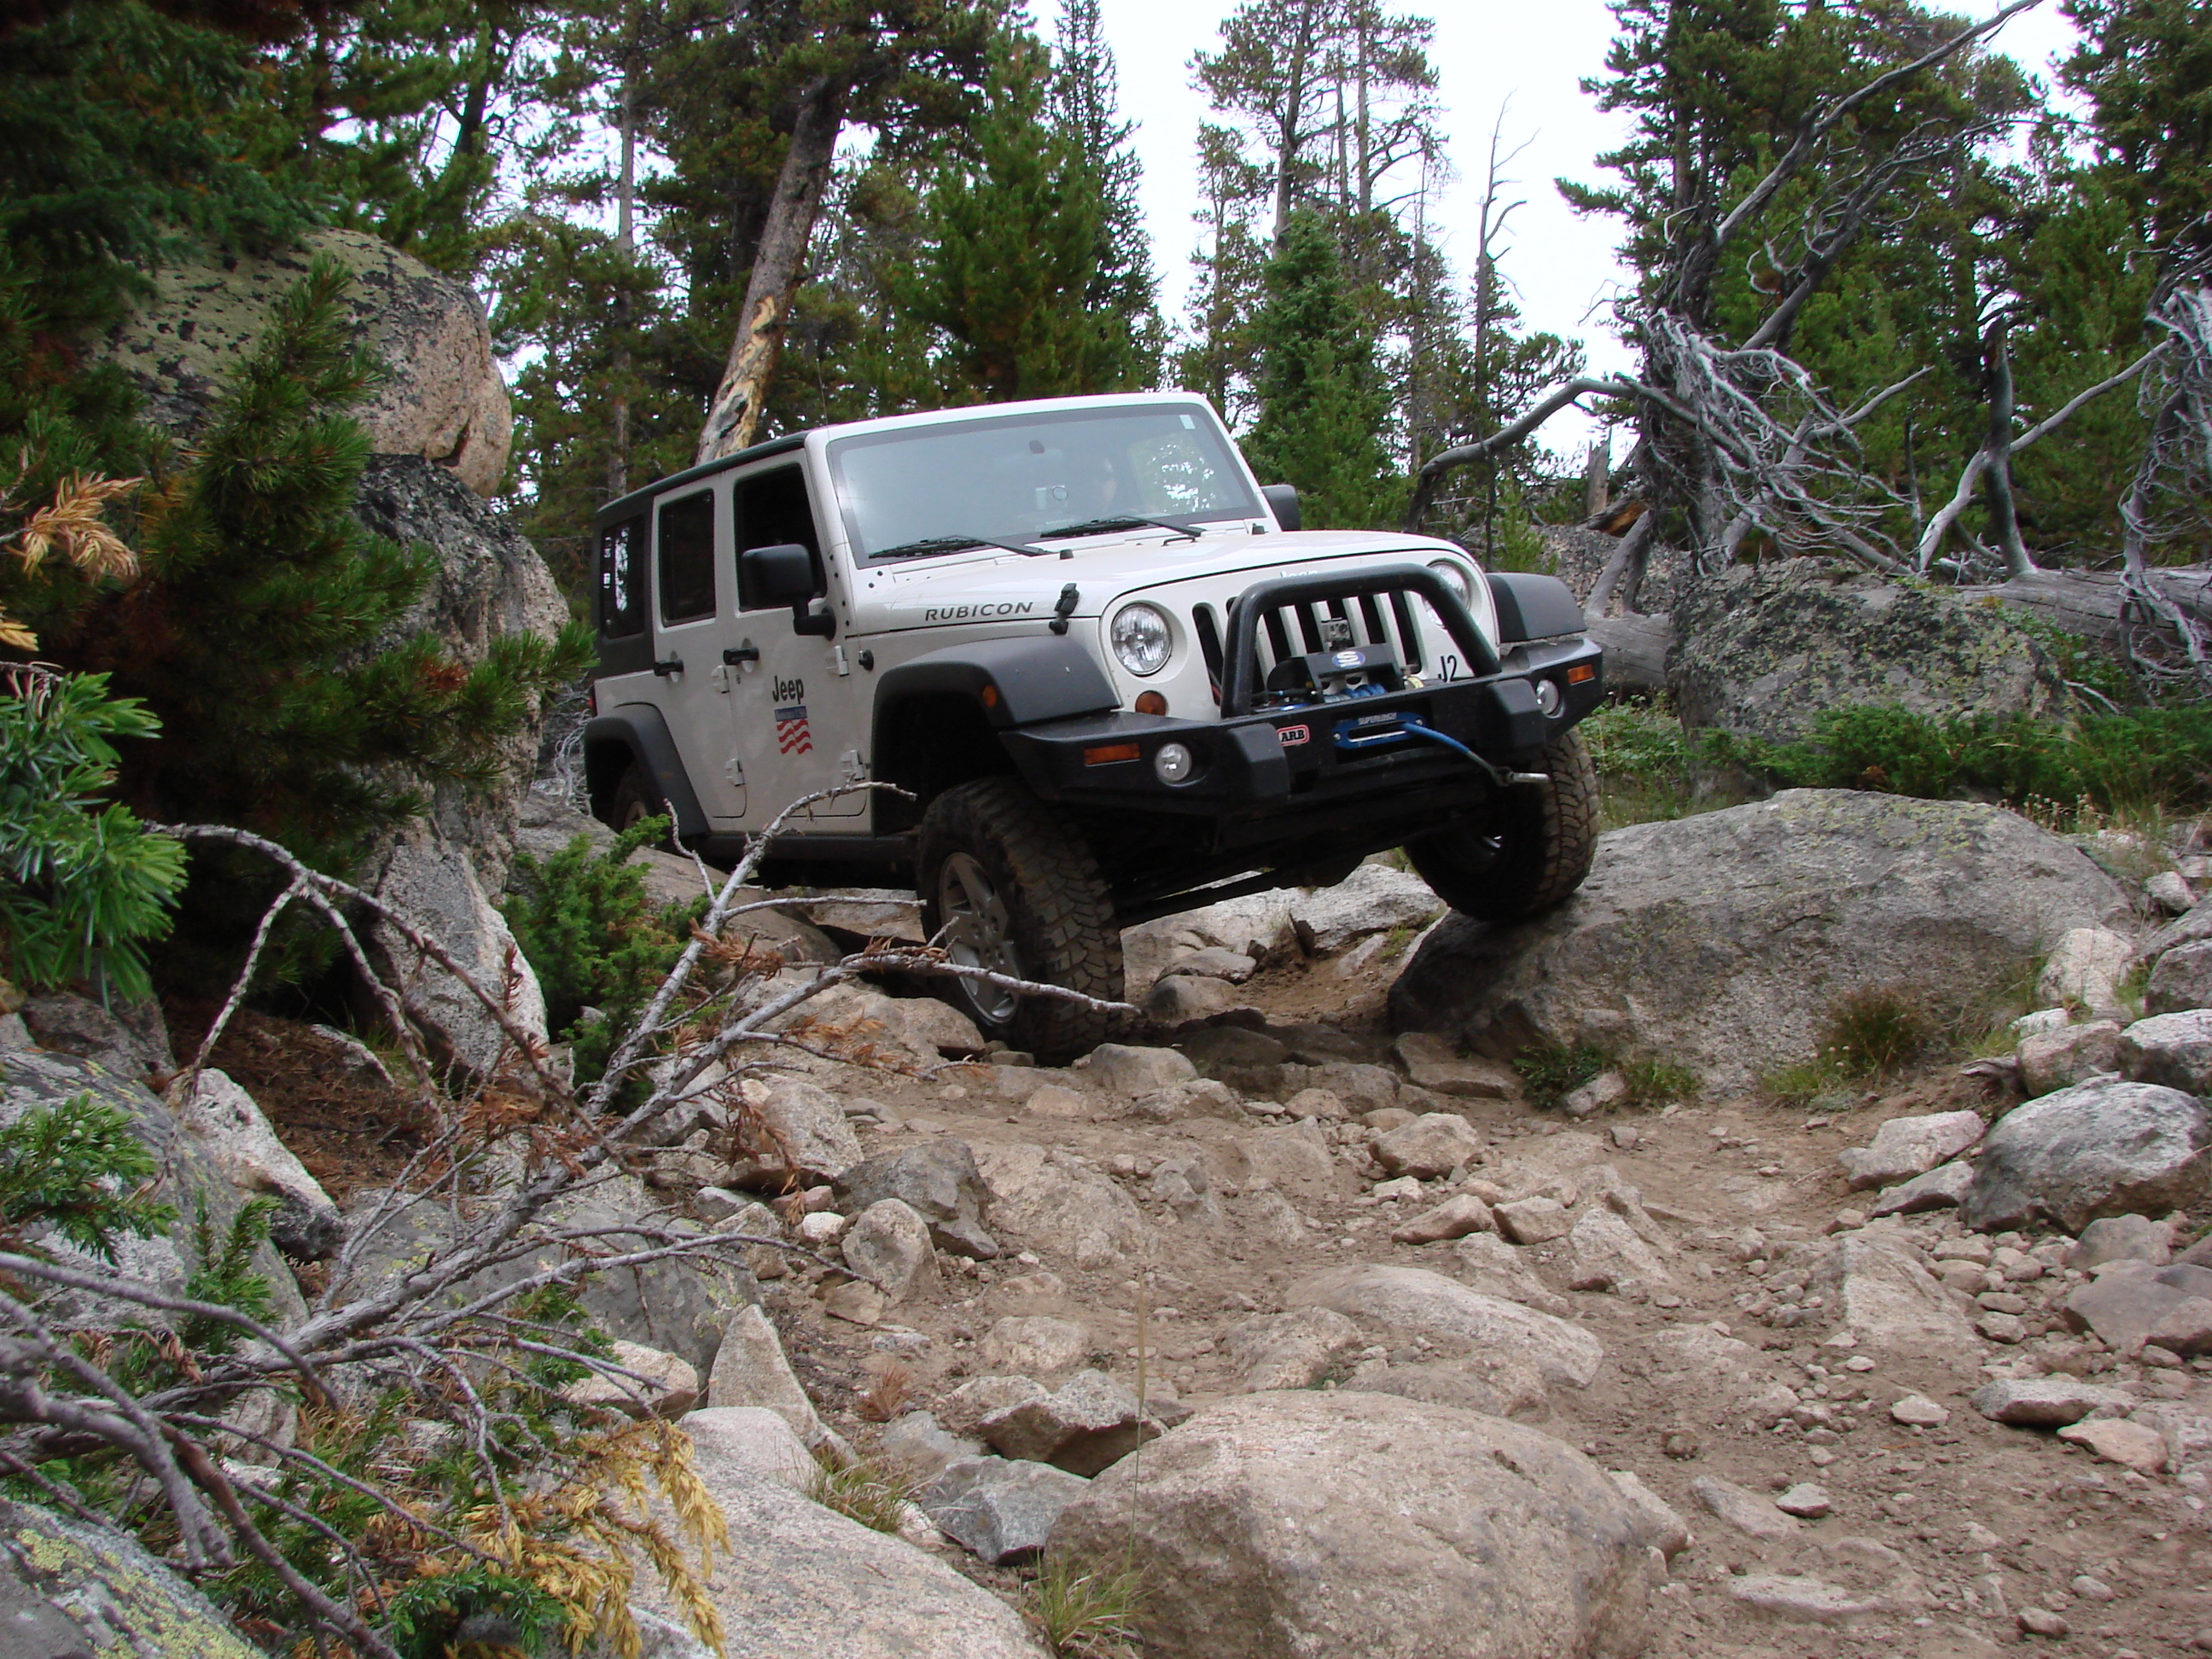 Bighorn mountains Jeep Jamboree event